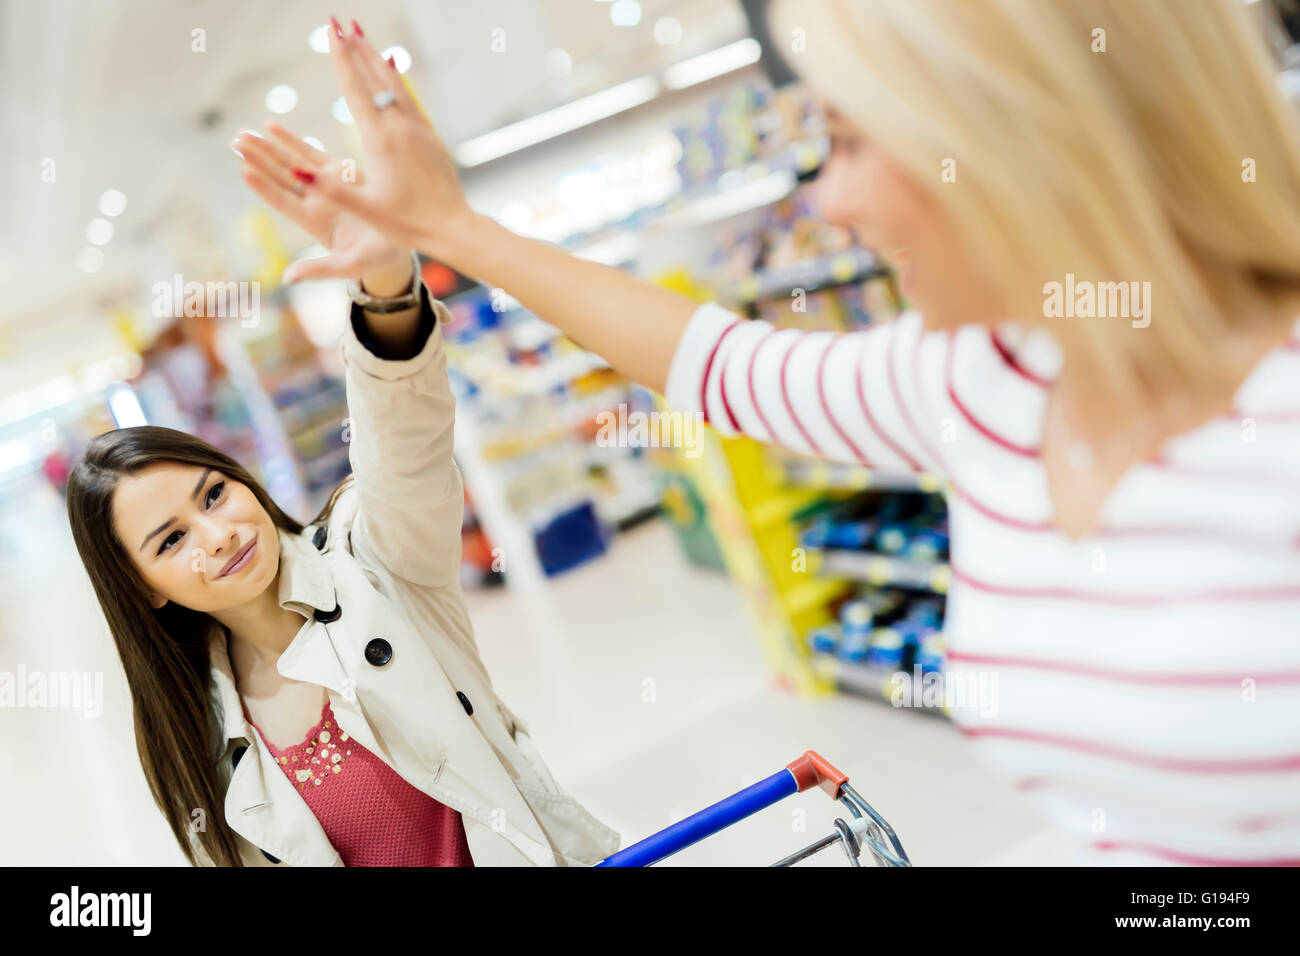 Women satisfied after shopping in supermarket - Stock Image